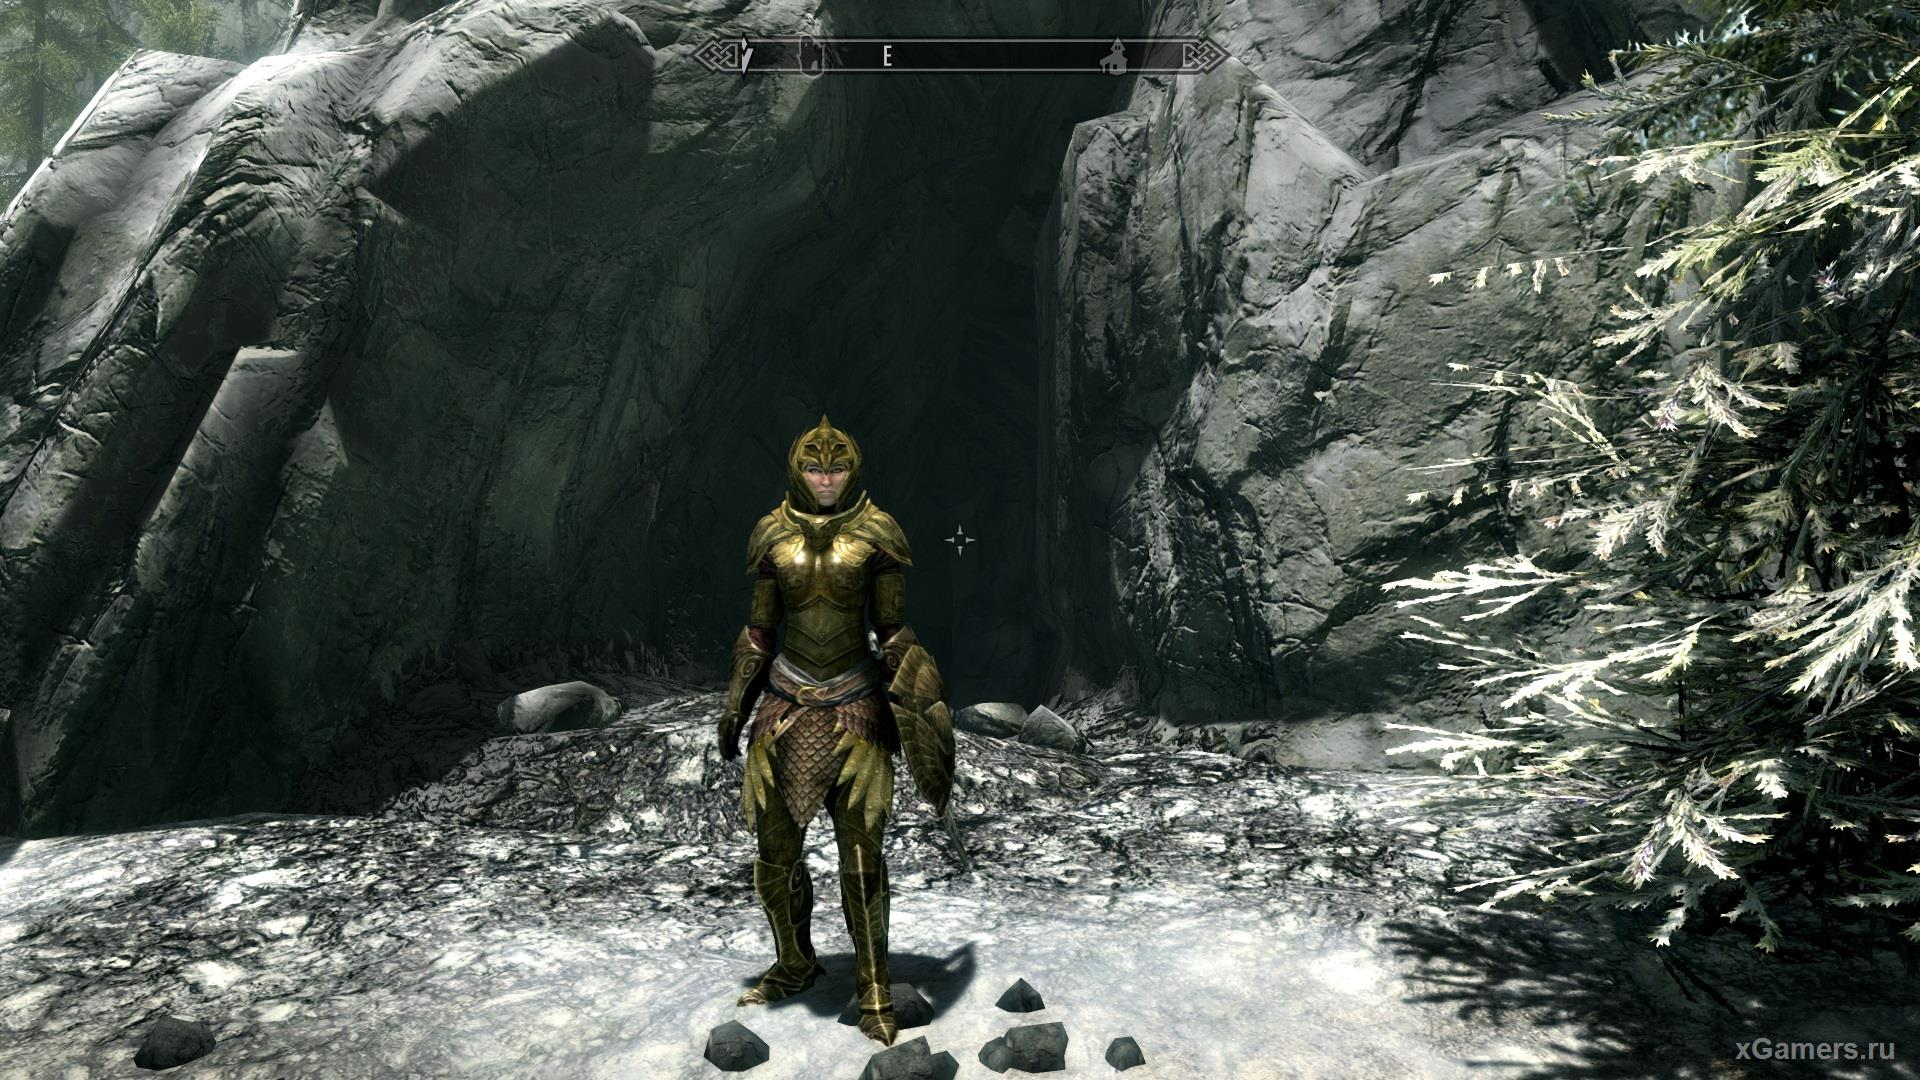 Light Elven Armor. You can find on the robbers or create yourself